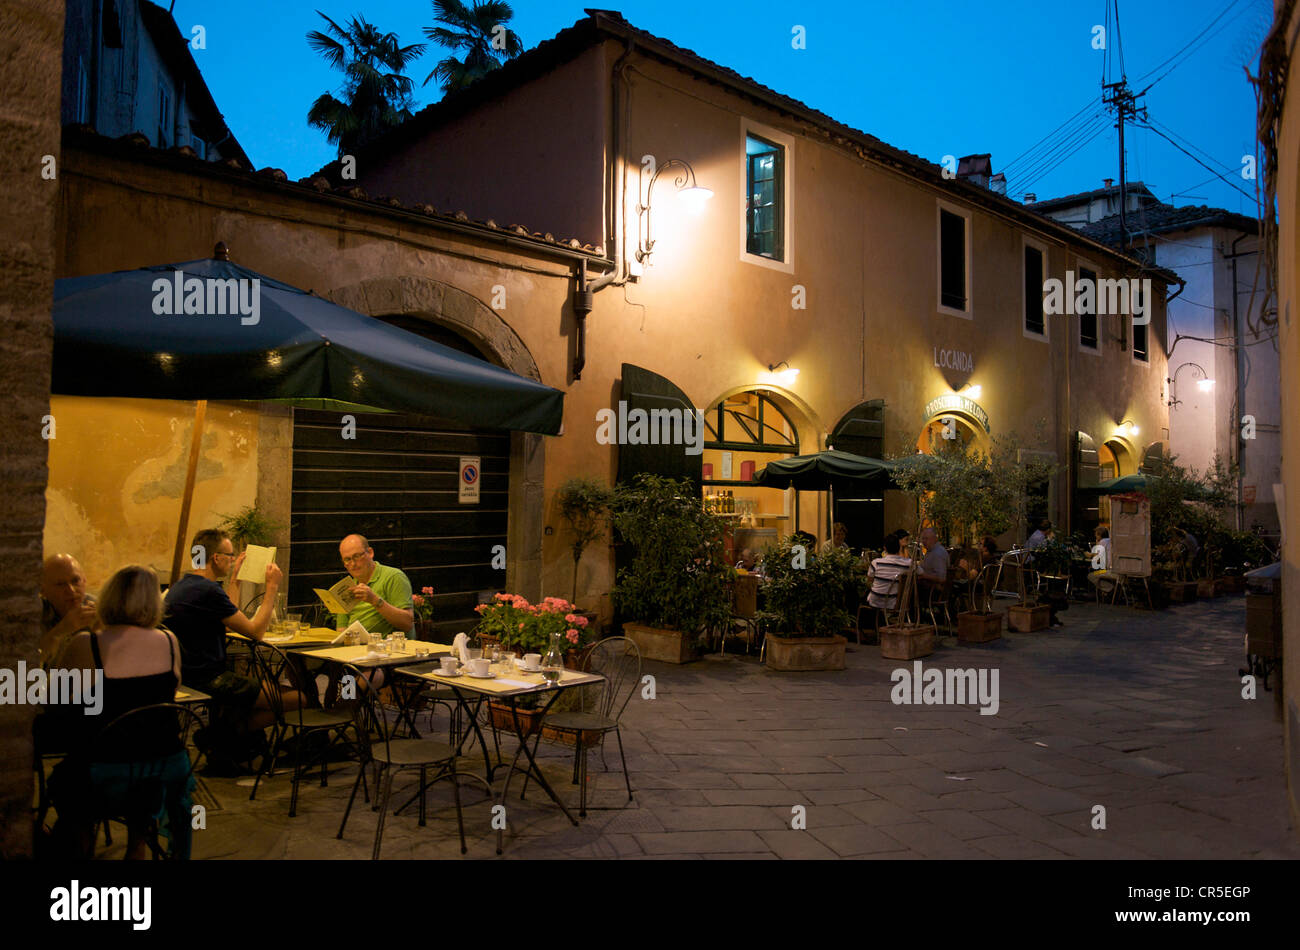 Italy, Tuscany, Lucca - Stock Image